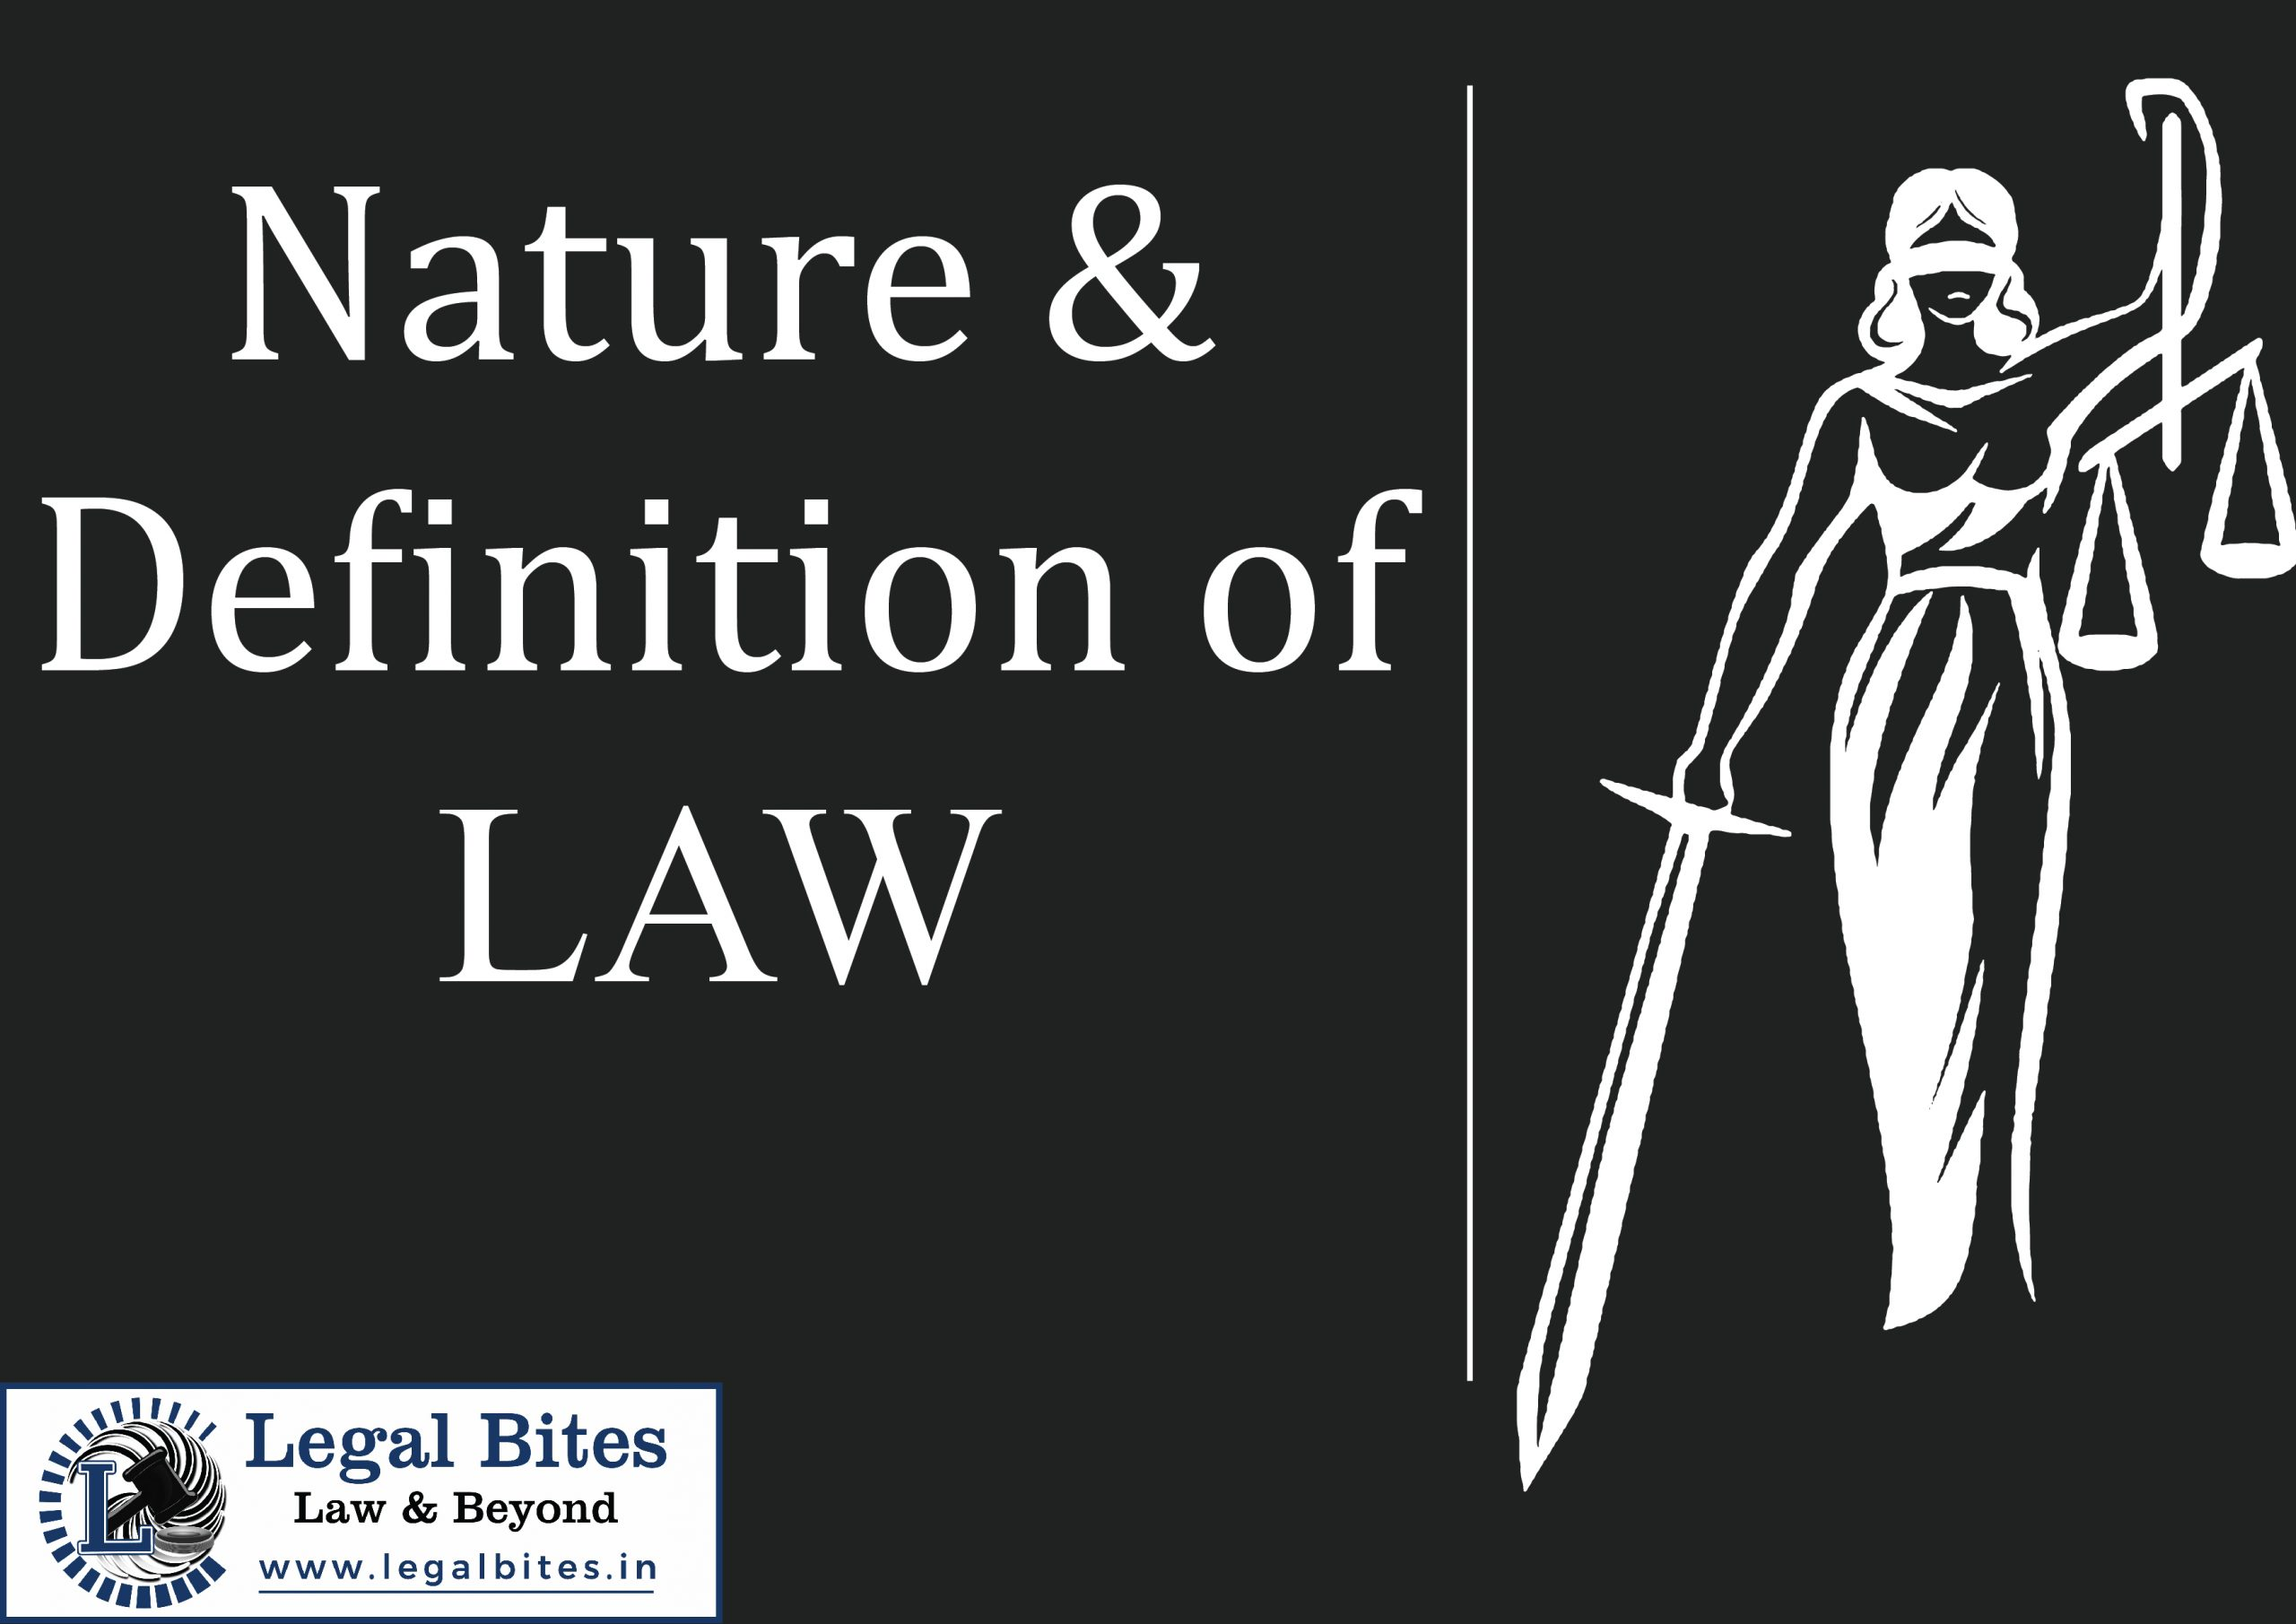 Nature & Definition of Law